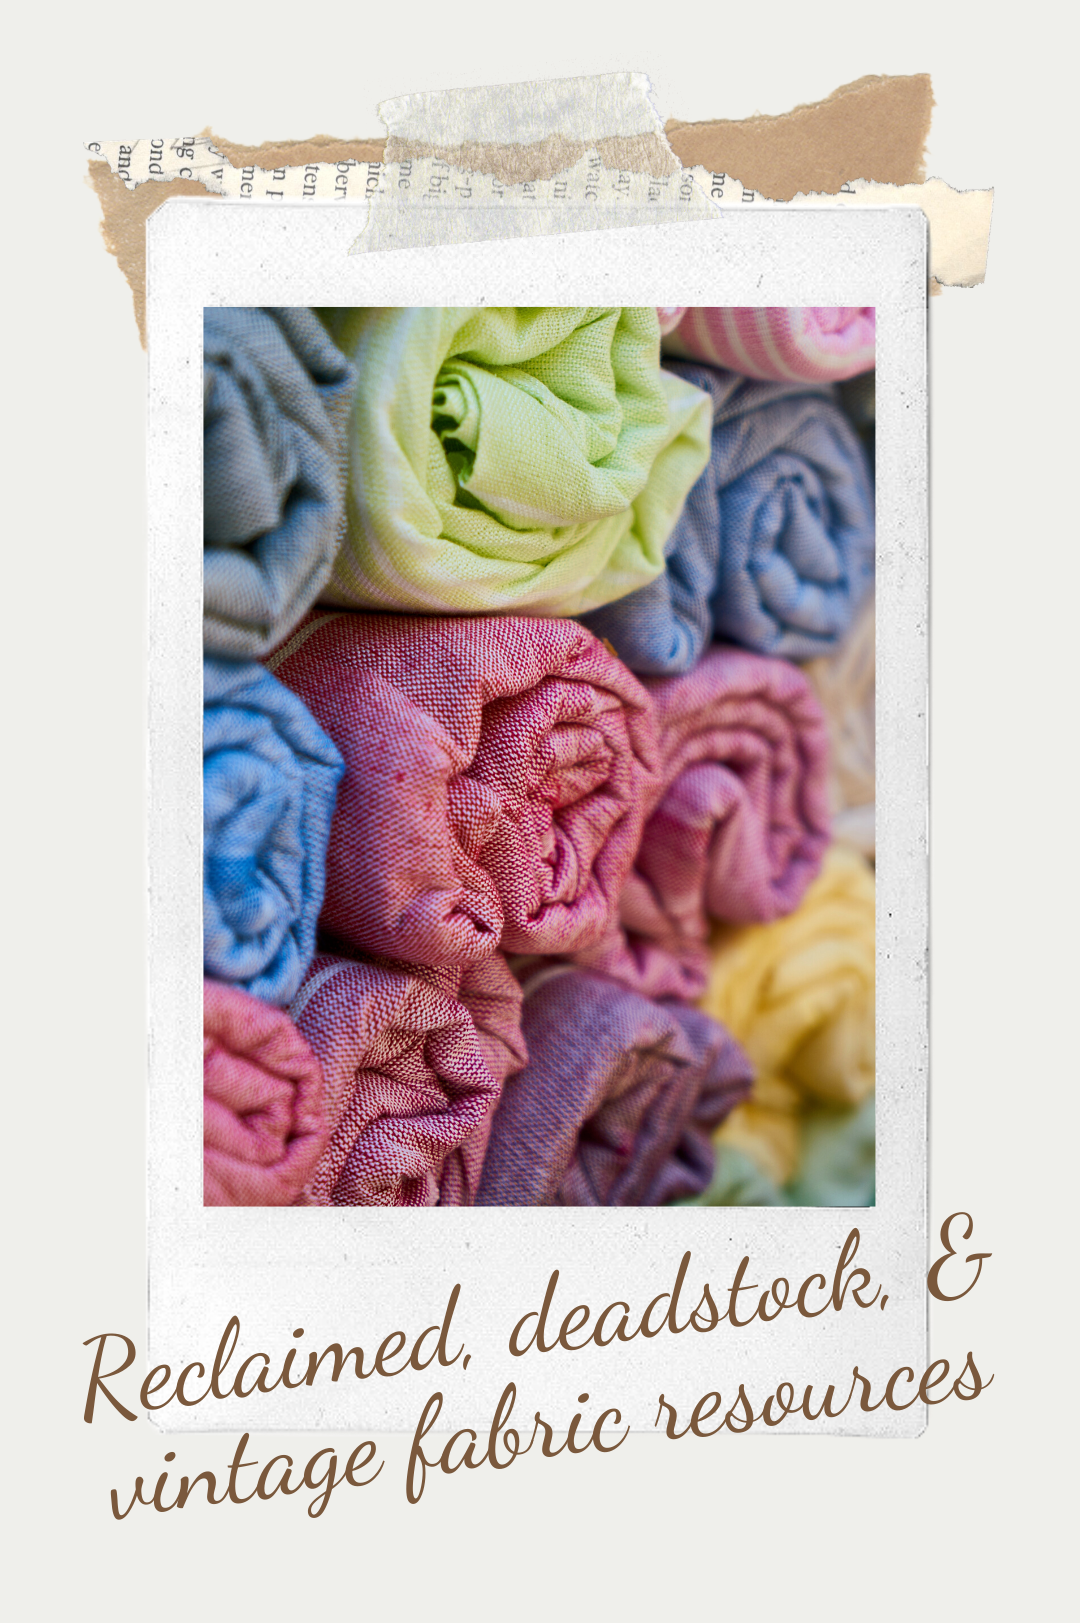 Reclaimed, Deadstock and Vintage Fabric Resources- Trish Stitched